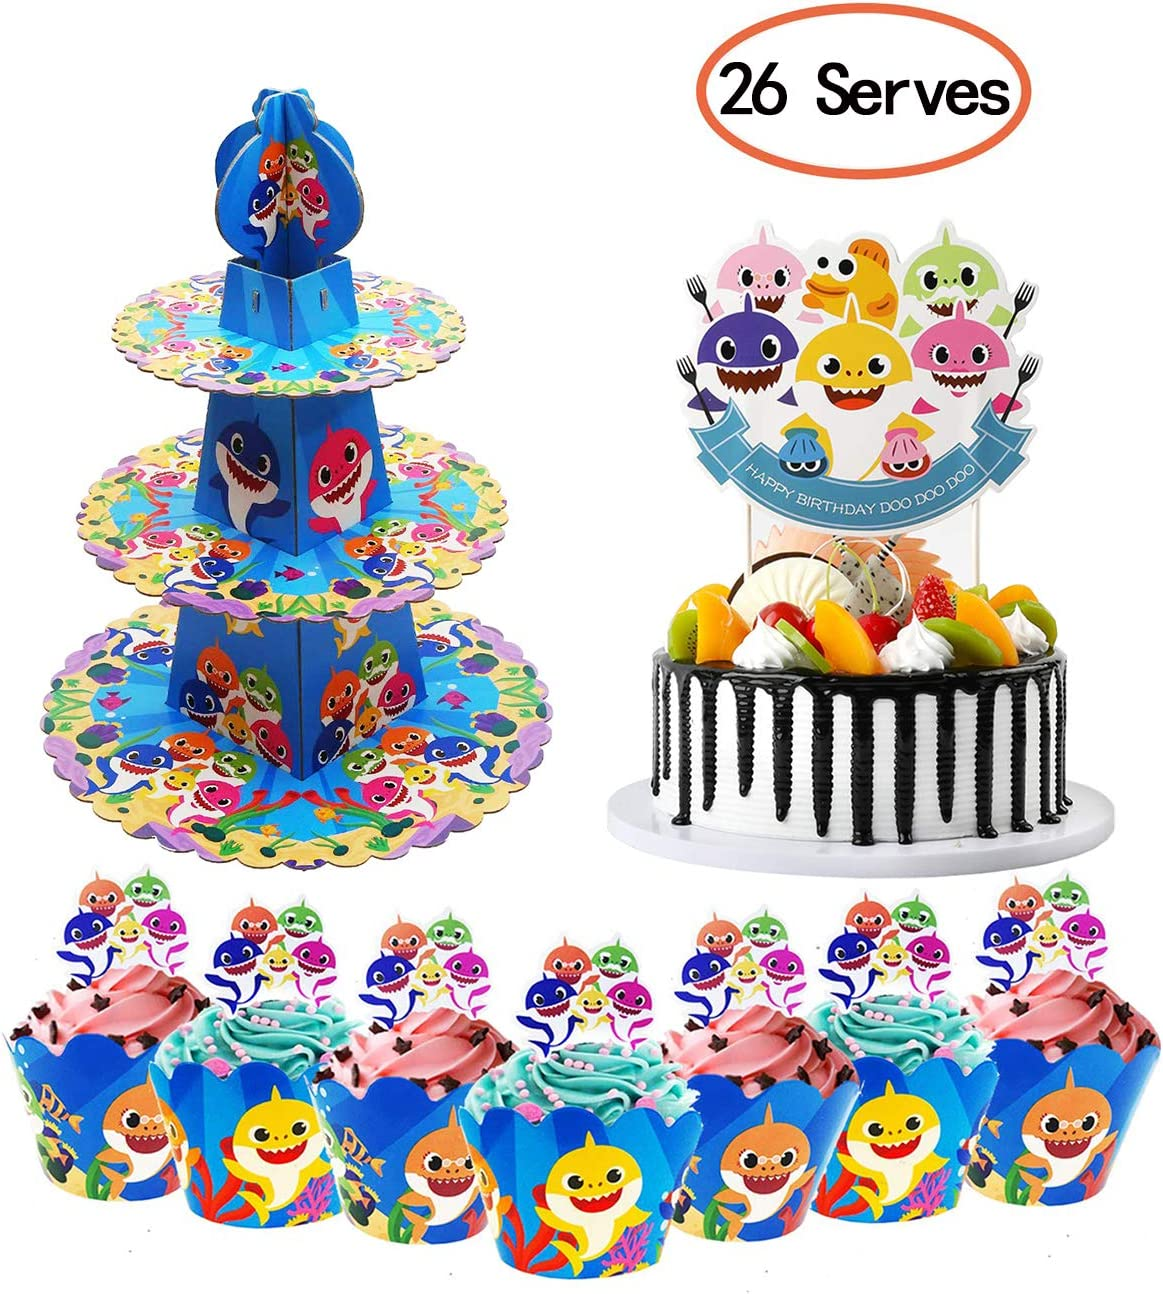 Shark Cake Stand Birthday Party Supplies for Baby Cupcake Topper and Wrapper Dessert Cupcake Holder for Kids Baby Birthday Party, Baby Shower, Shark Themed Party Decorations 26 Serves